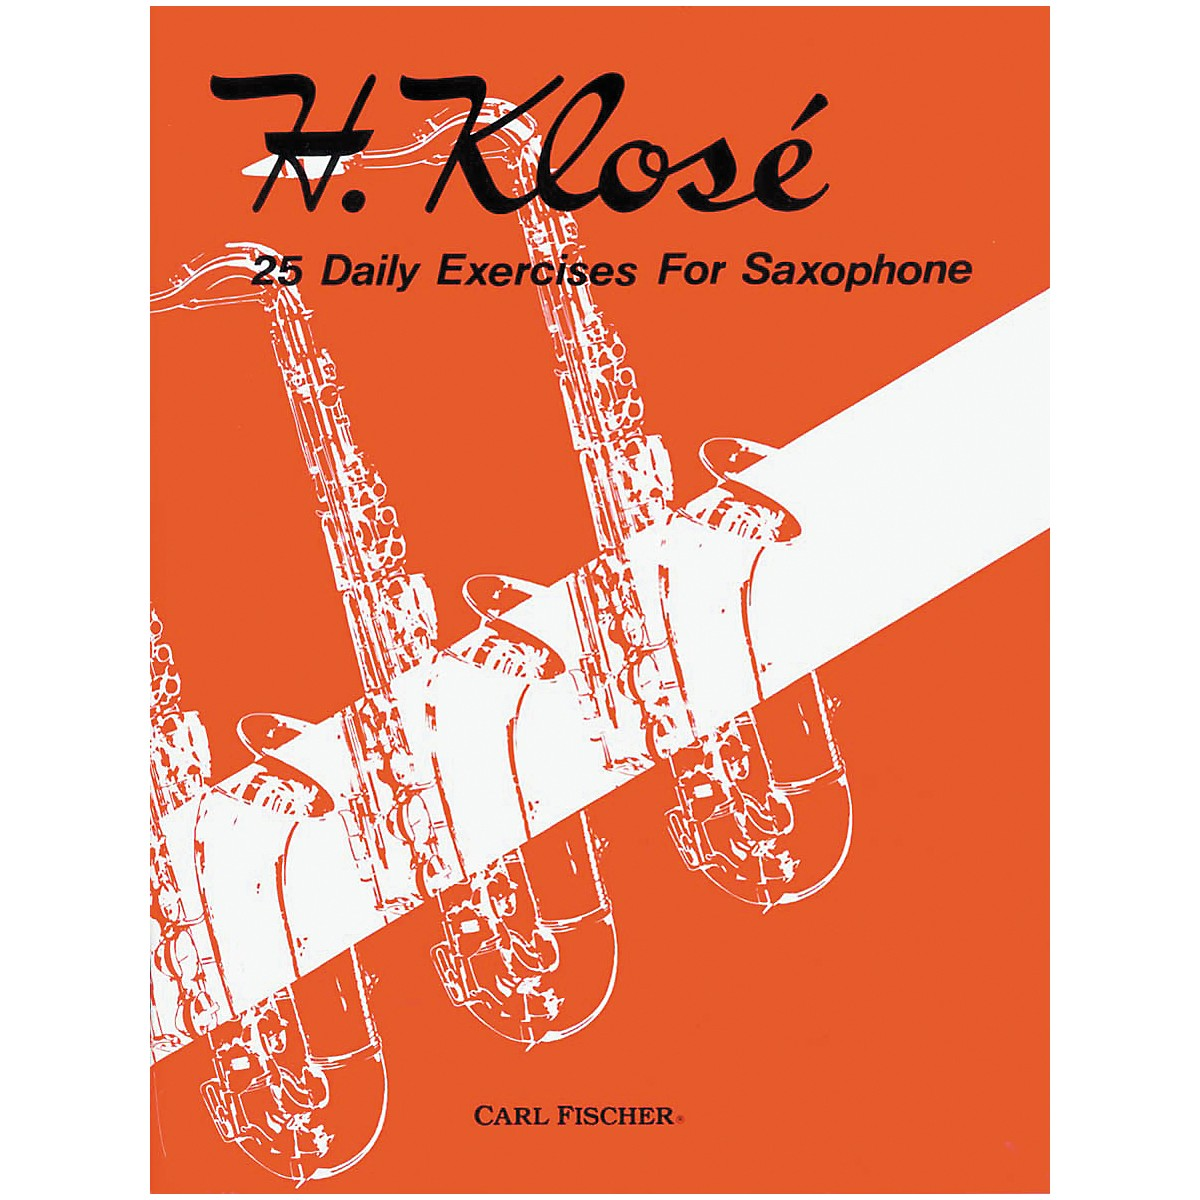 Carl Fischer 25 Daily Exercises For Saxophone Book